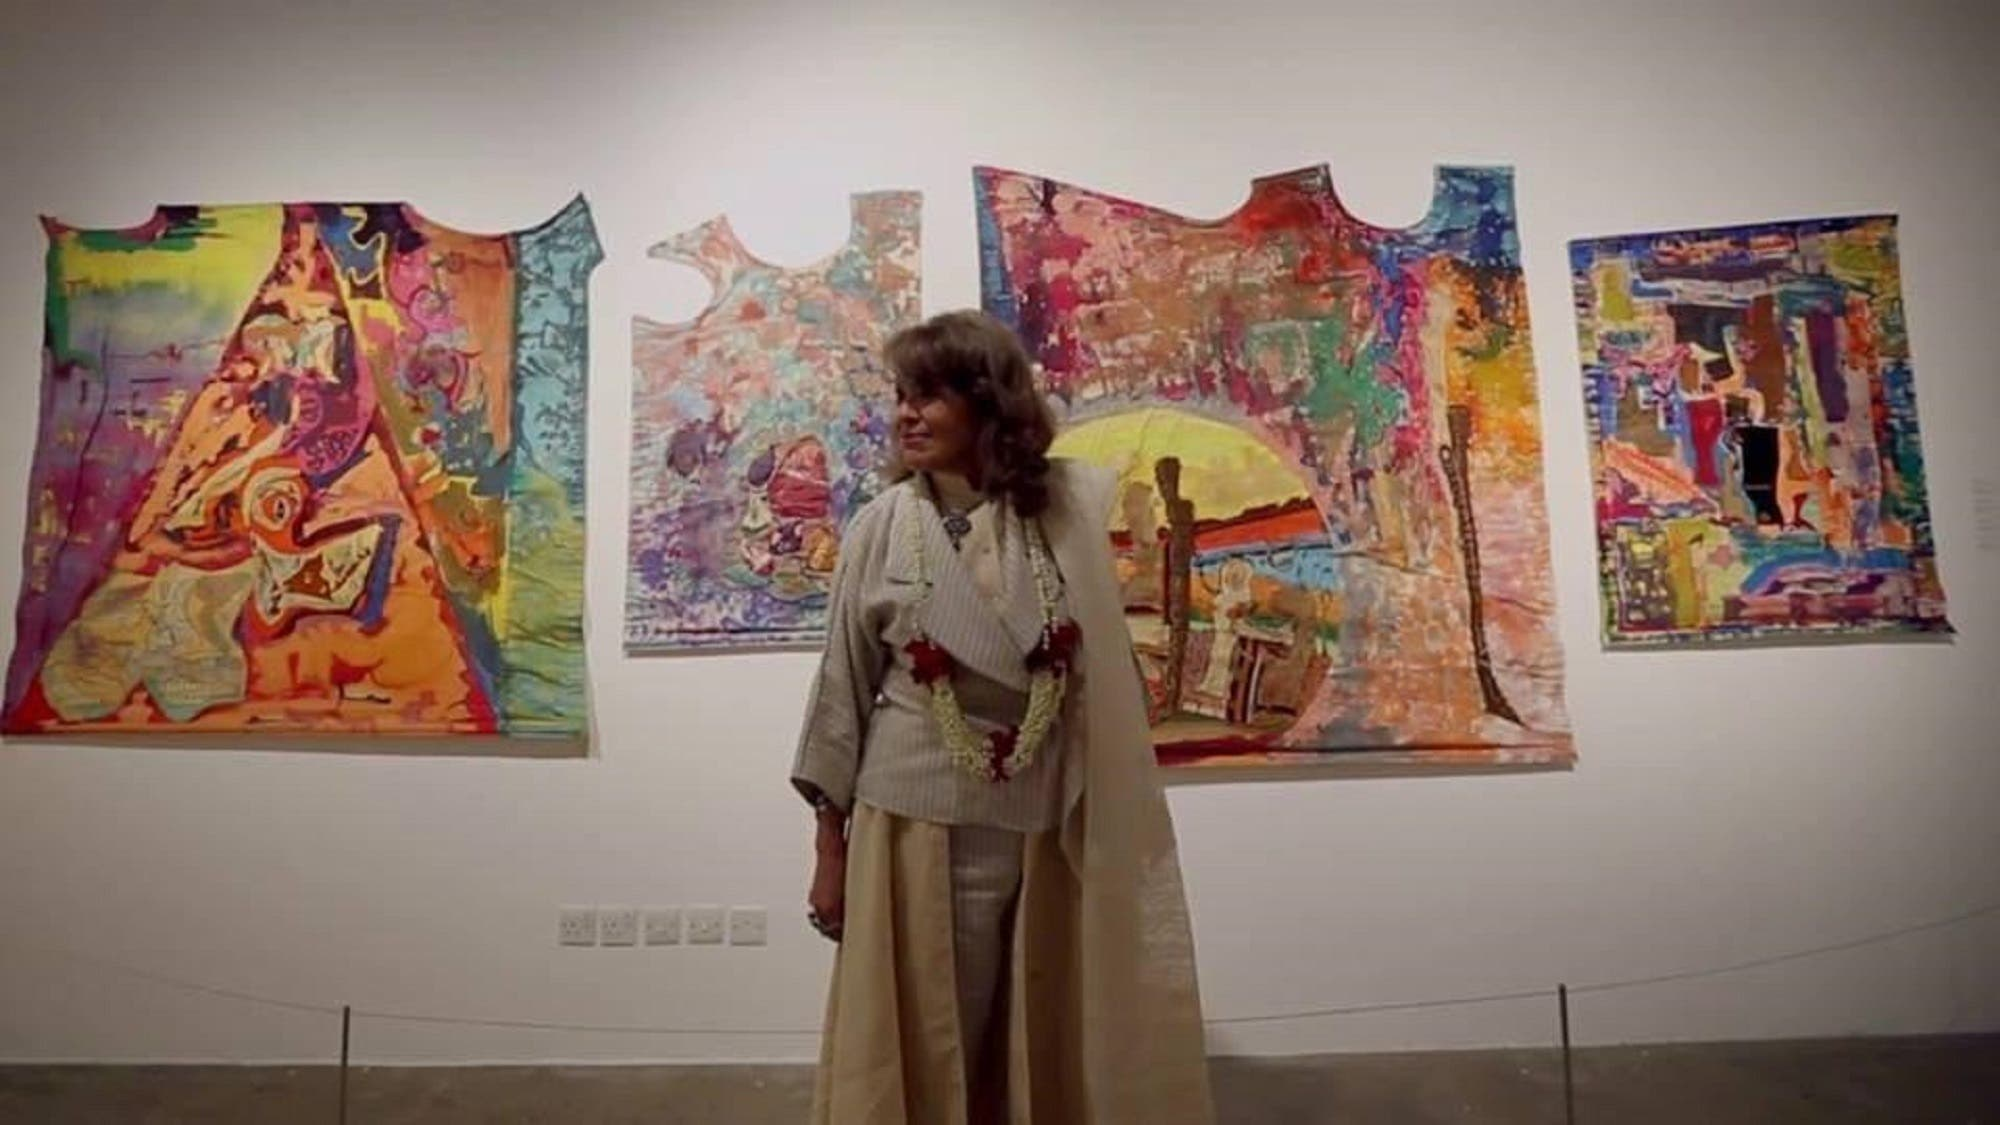 Mosly's work, distinct, vibrant and colorful, often reflected the traditions and heritage of her birthplace.